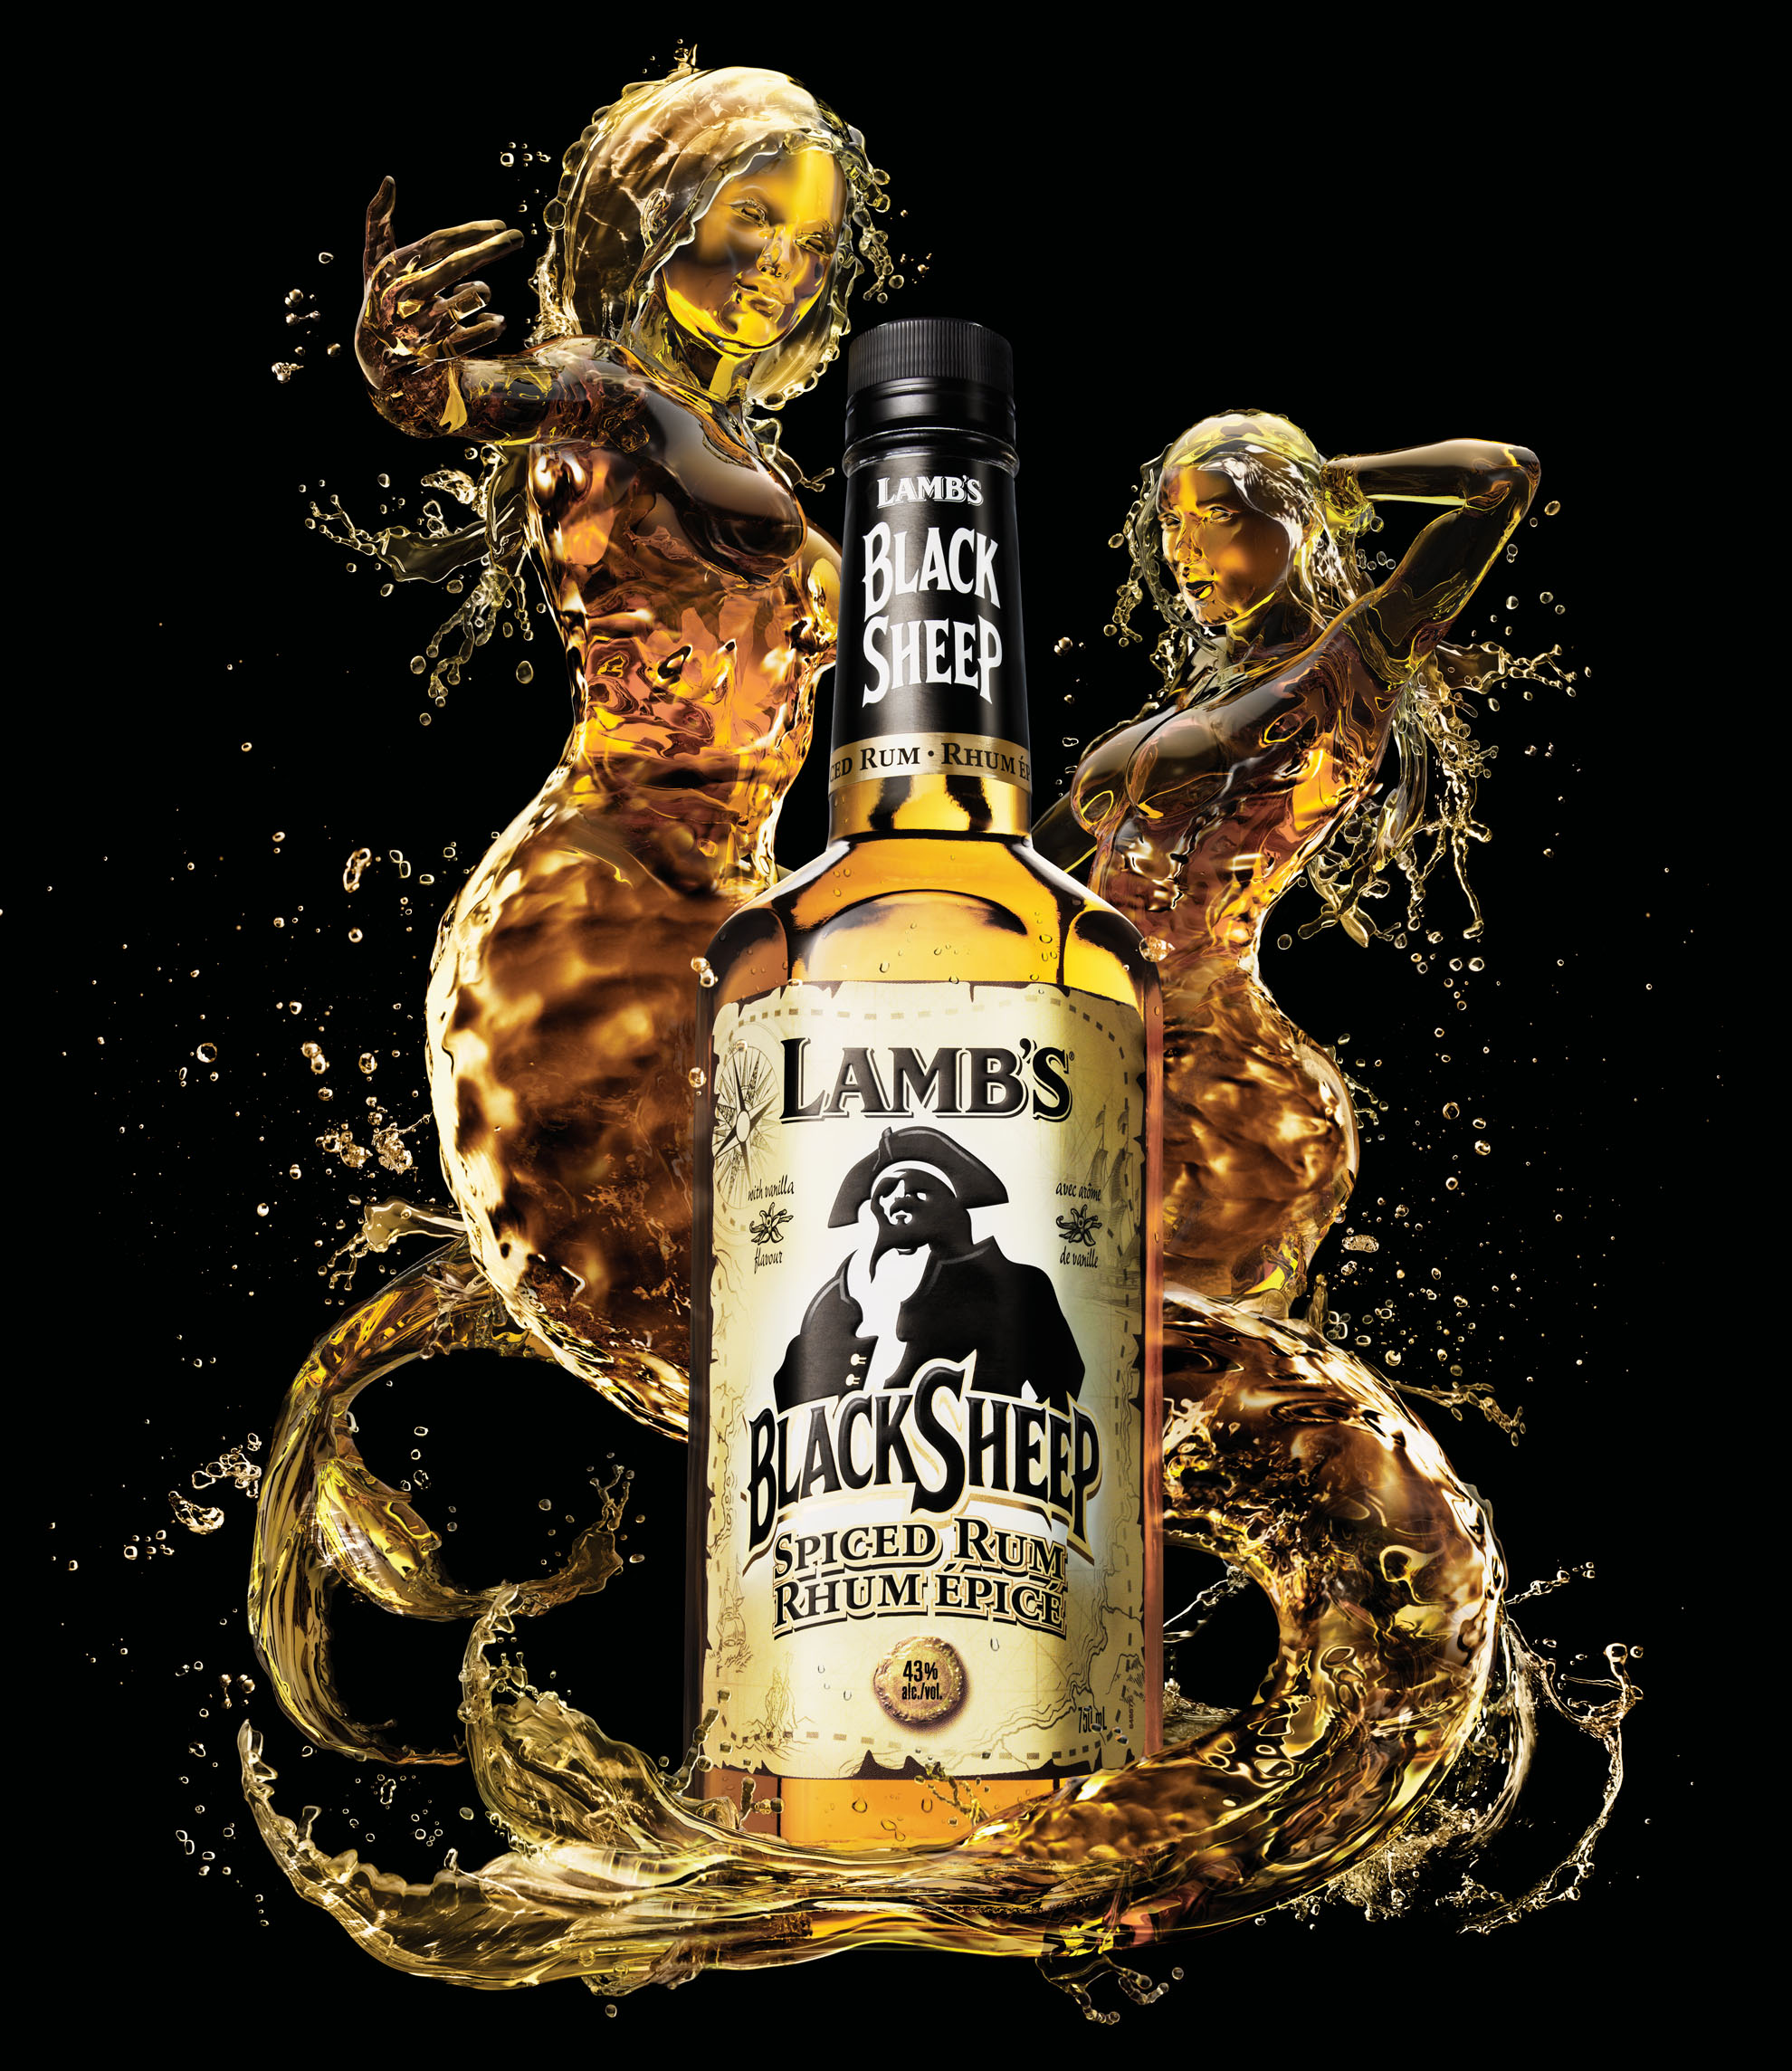 Agency • Smith Roberts  Client • Lamb's Rum  Art Director • Gerald Flach  Photographer • Philip Rostron  CGI and imaging • Brad Pickard